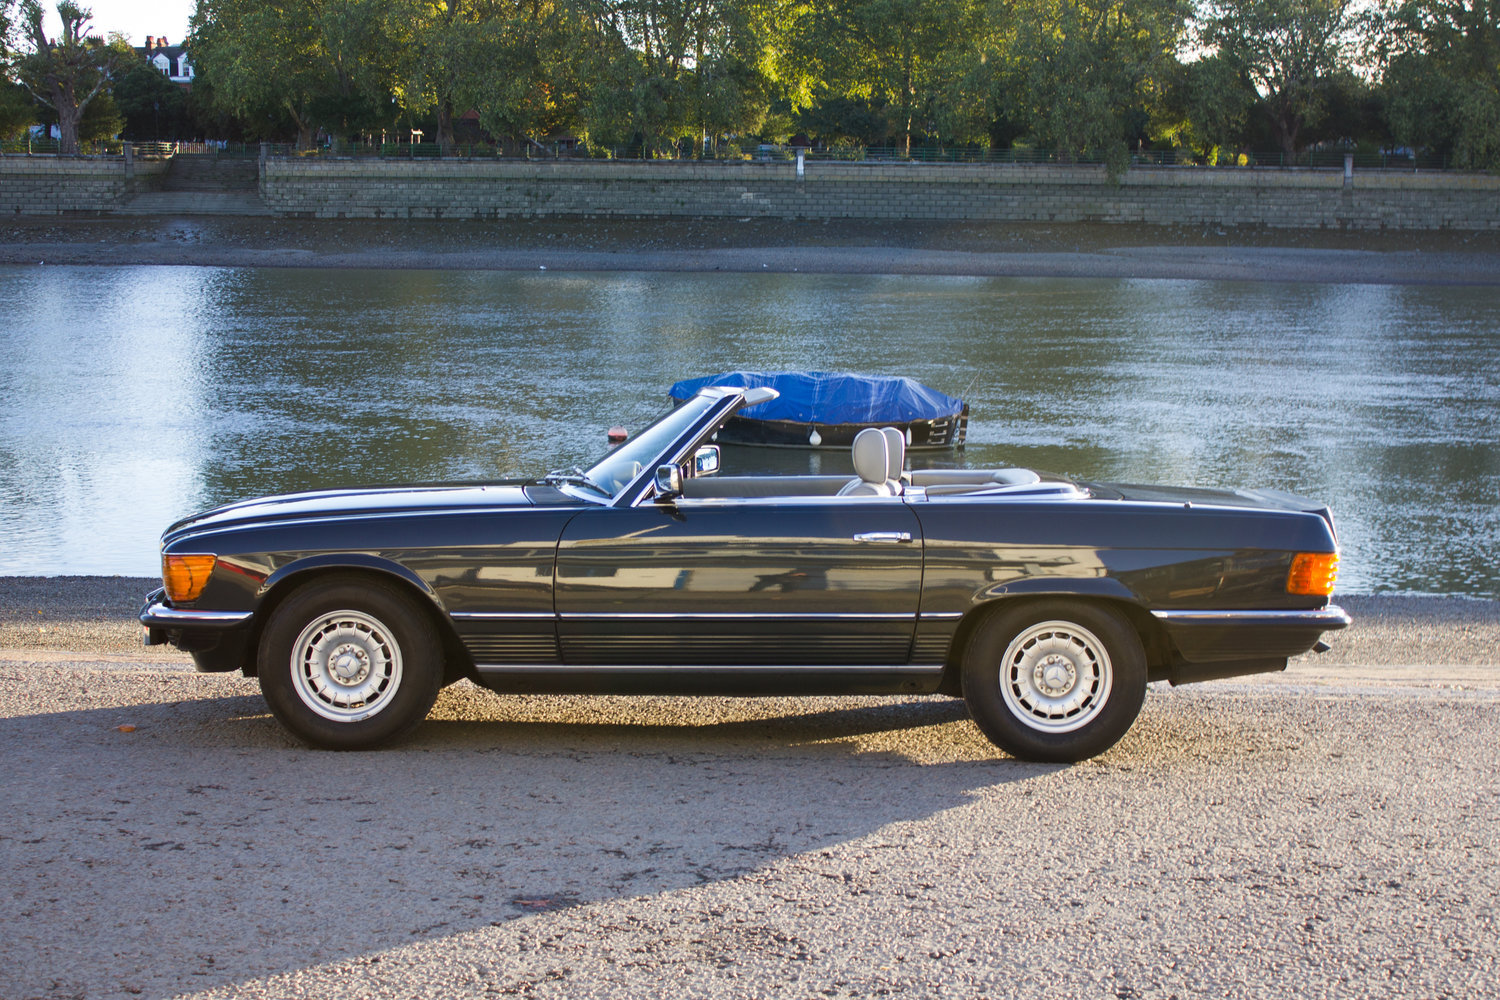 1985 Mercedes-Benz 500SL - LHD, AC, Heated Seats, 43k Miles For Sale (picture 2 of 6)